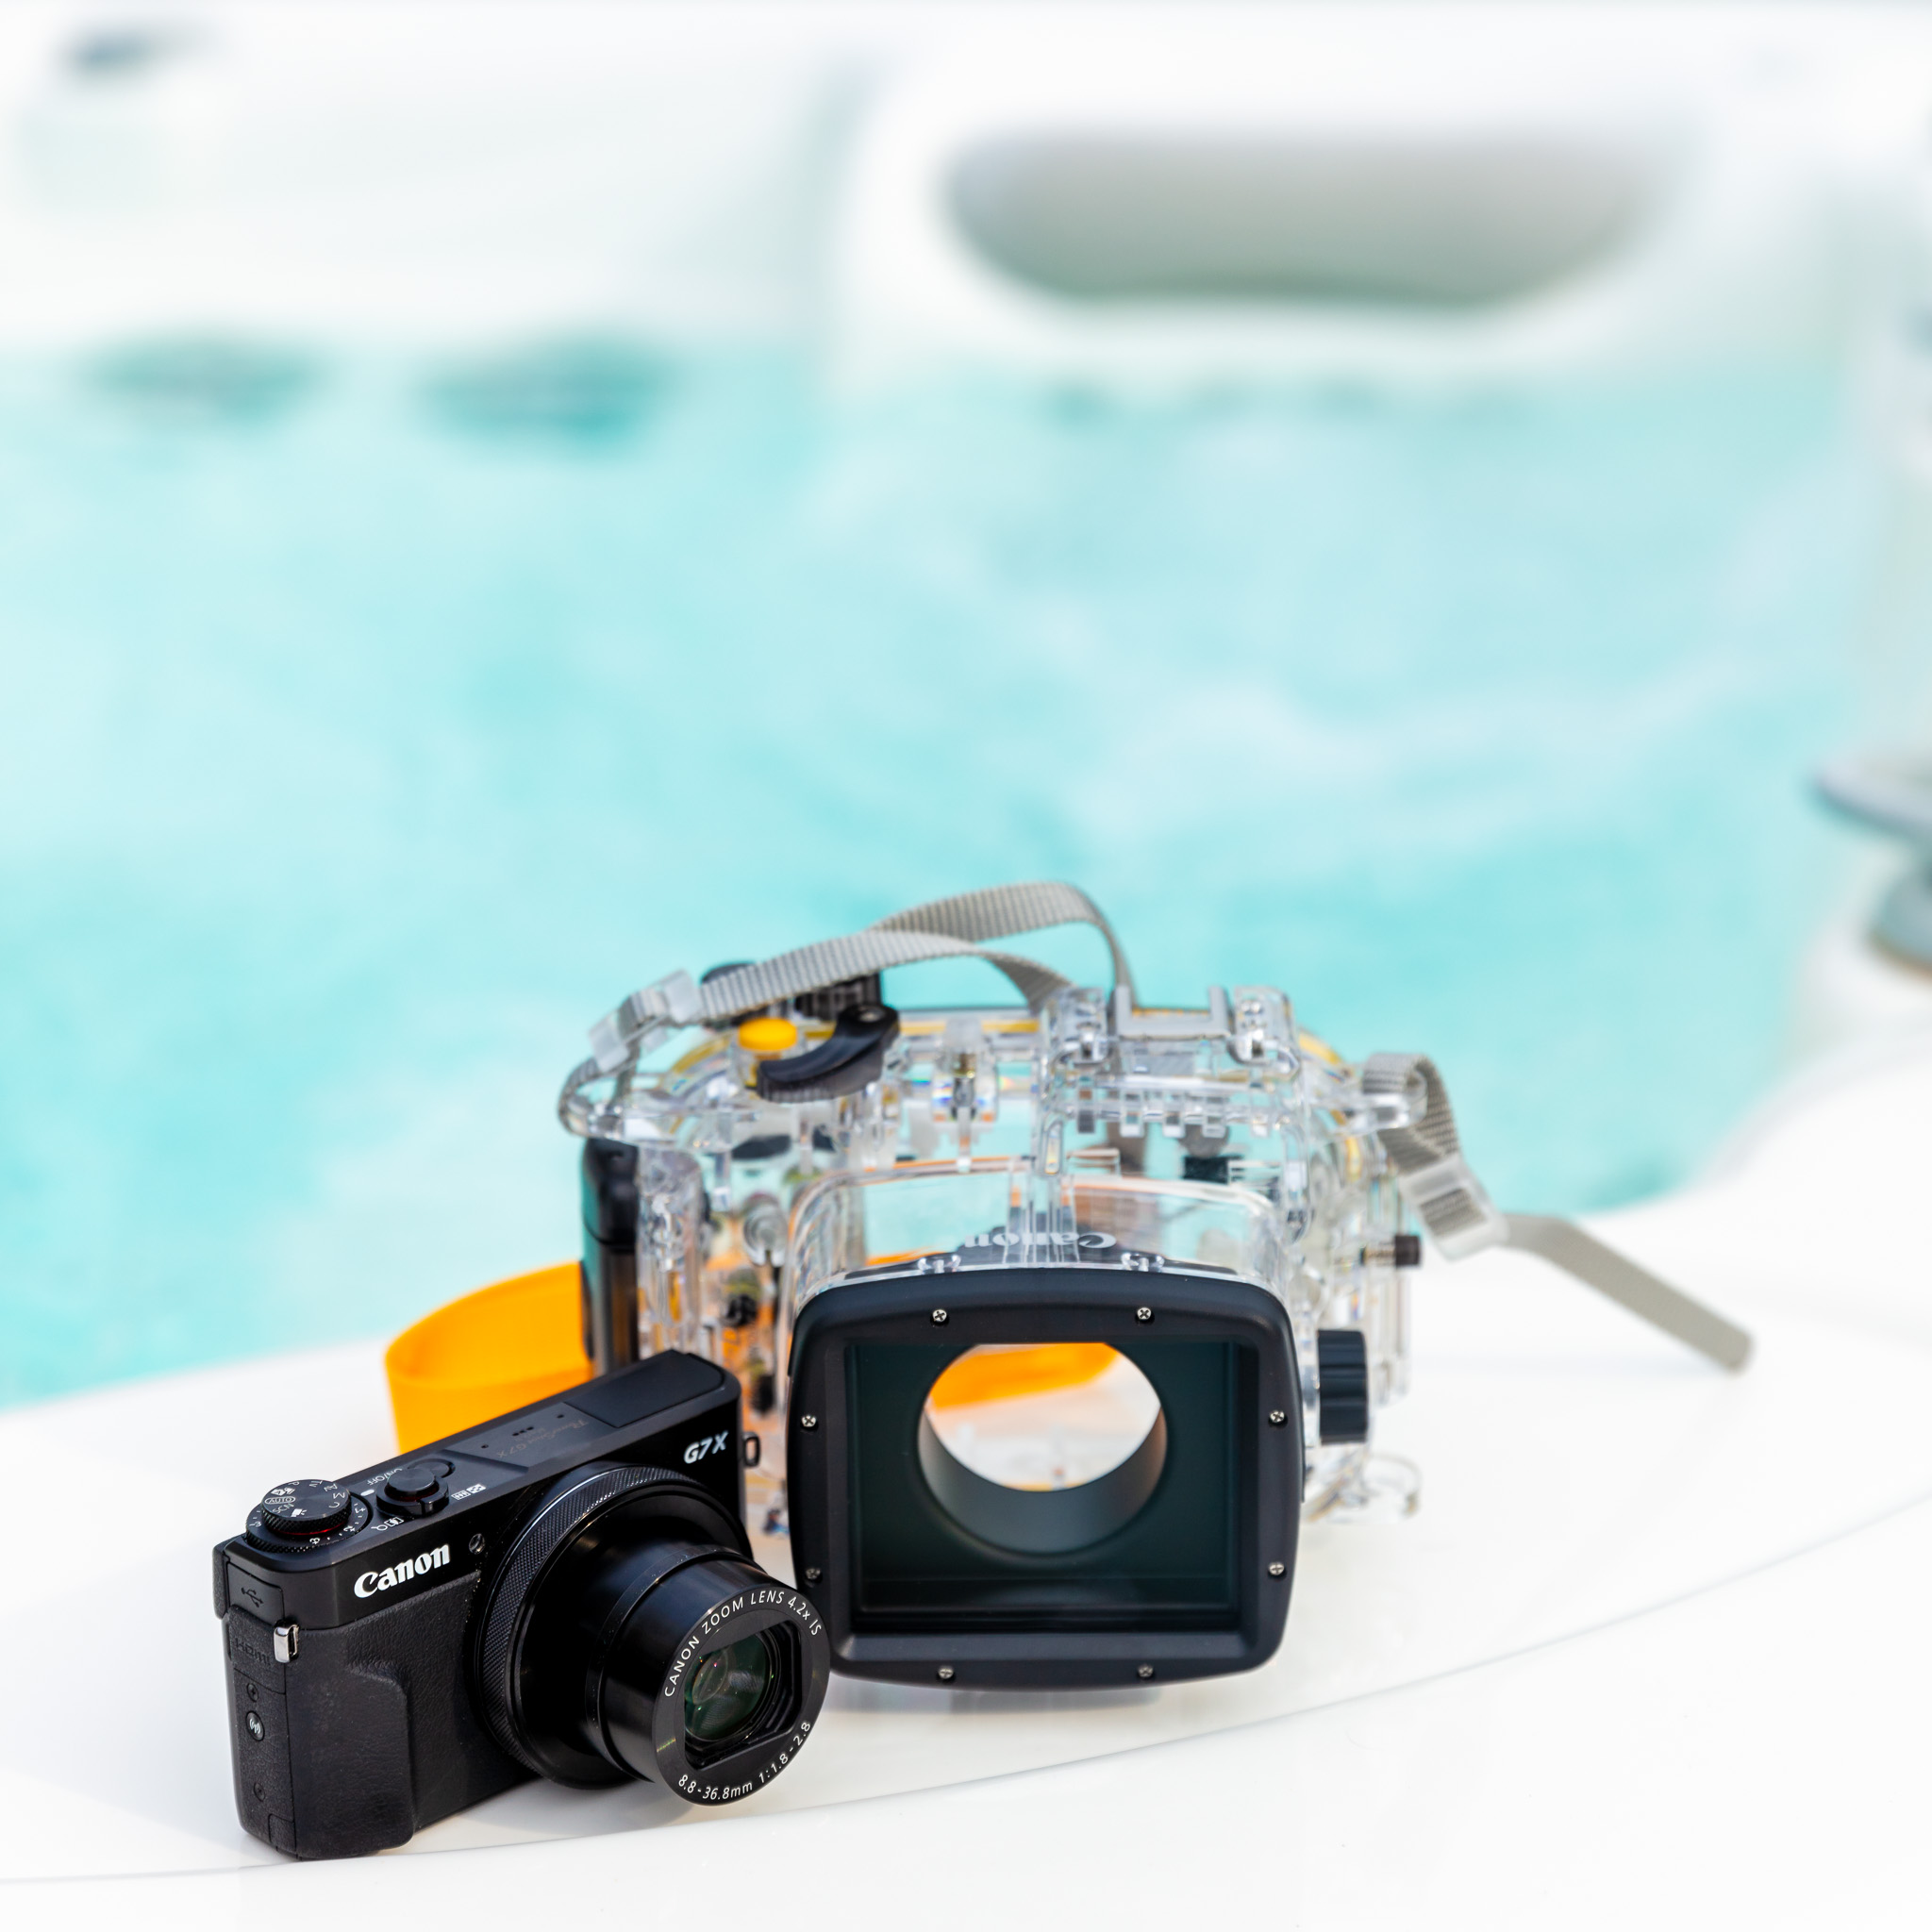 Canon PowerShot G7X mkII with Underwater Housing